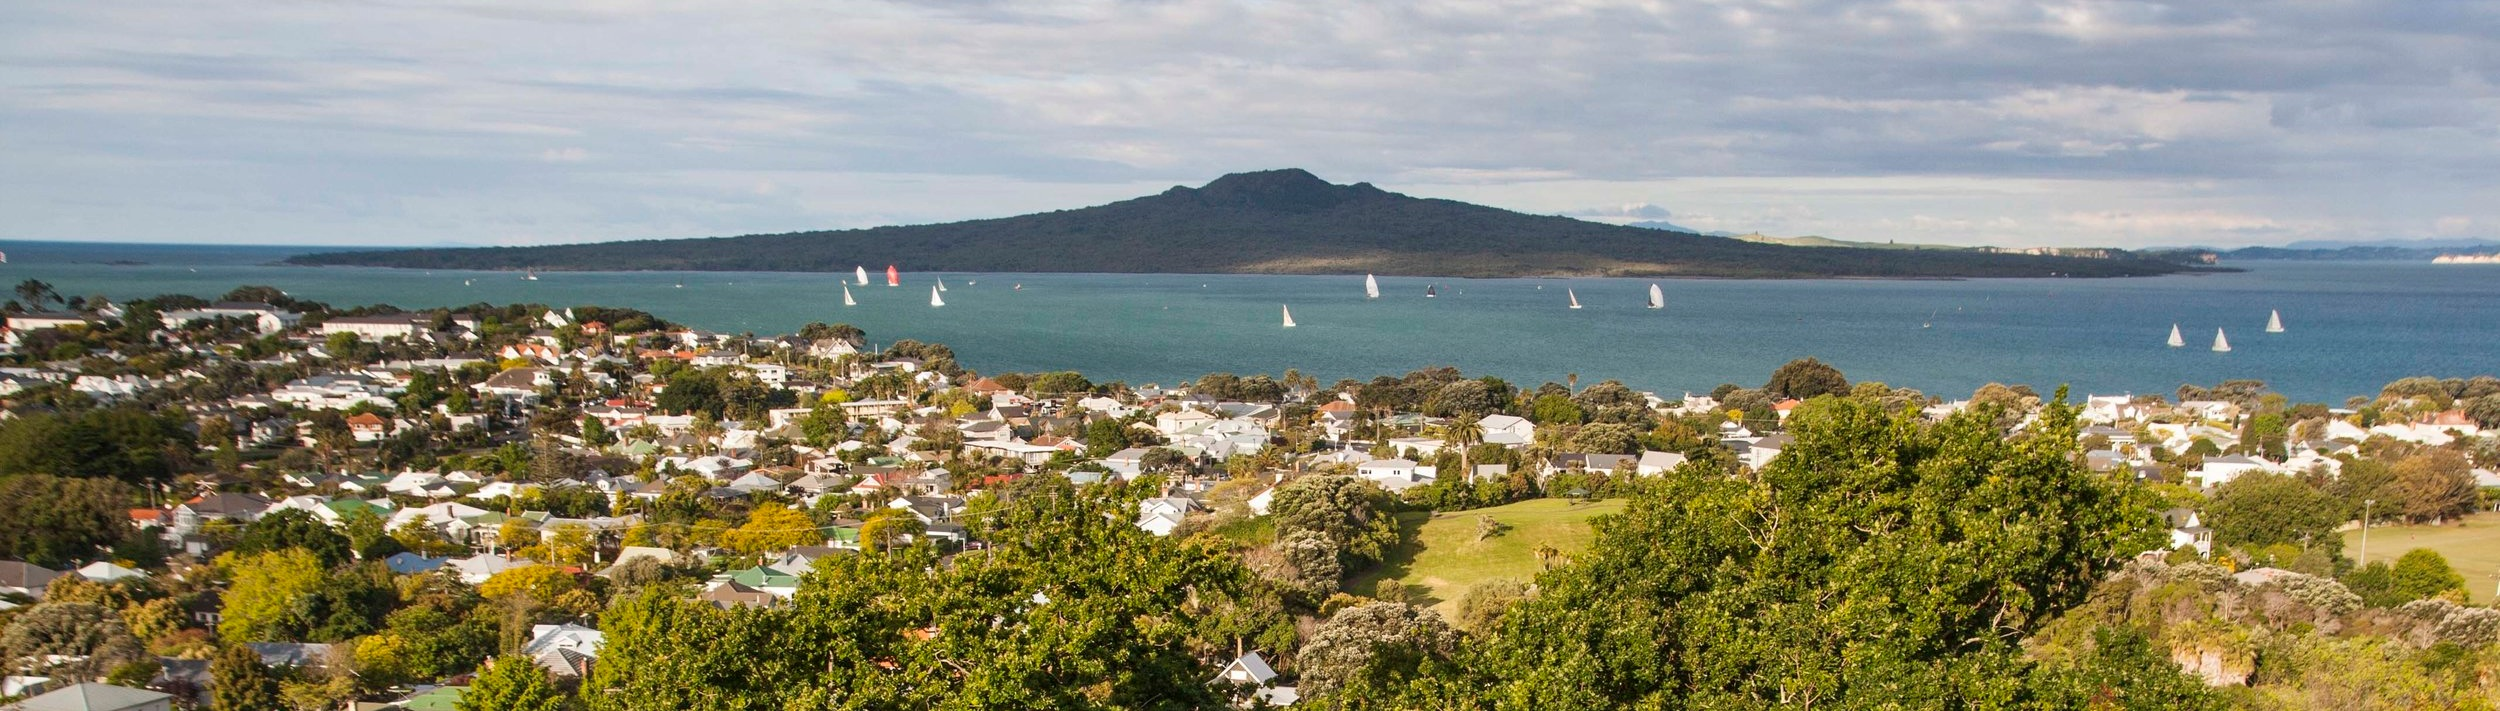 Volcanic and wild Rangitoto Island seen from suburban Auckland, New Zealand